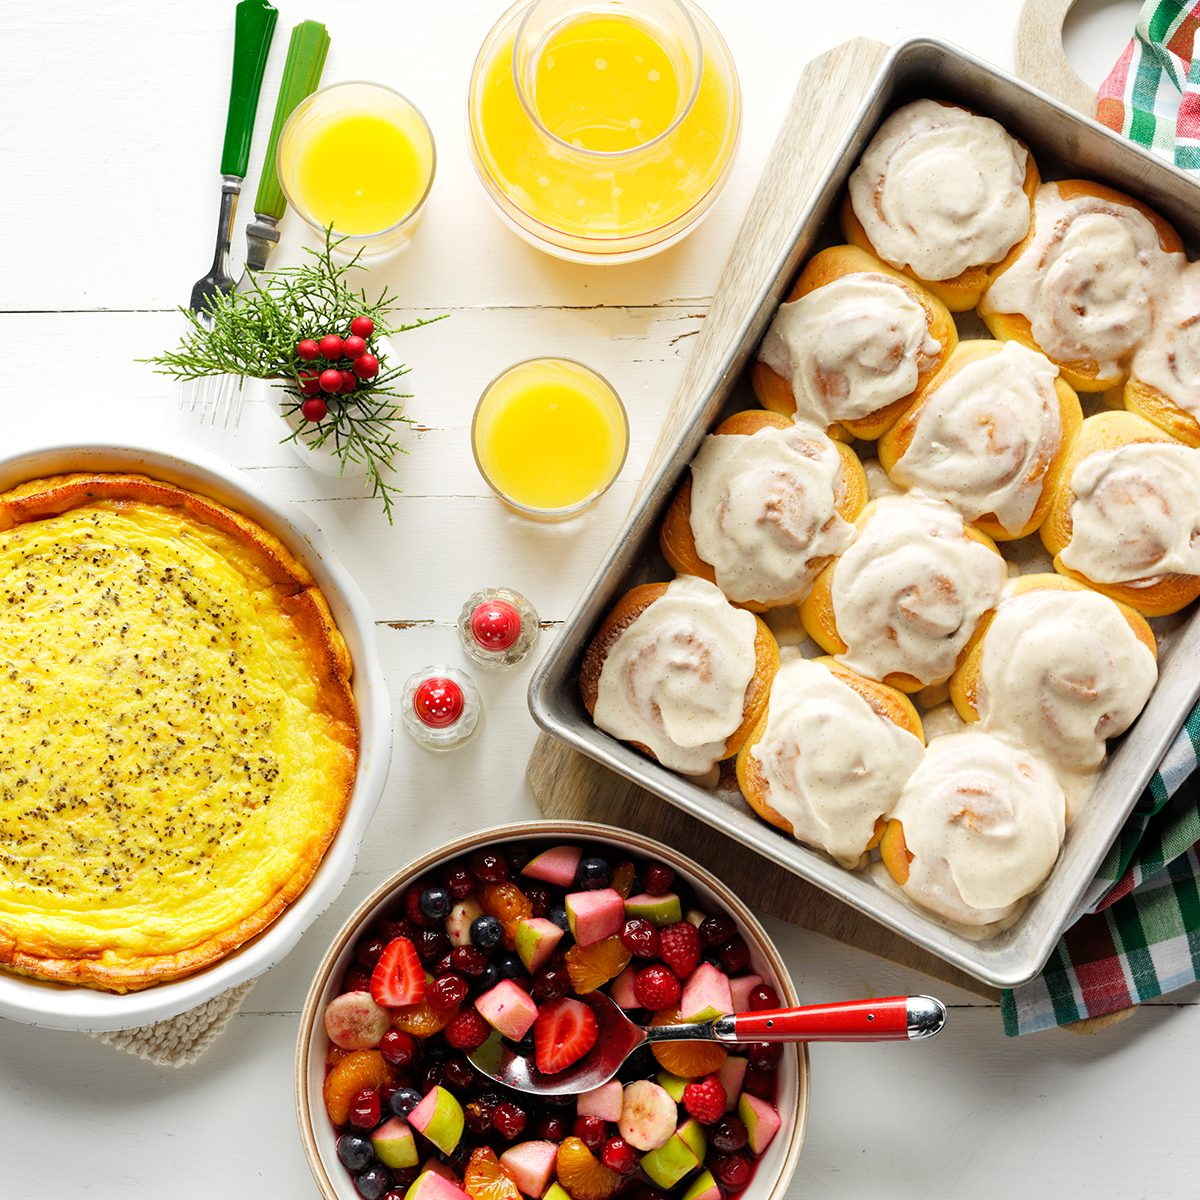 Christmas Party Themes.15 Festive Christmas Party Themes Taste Of Home